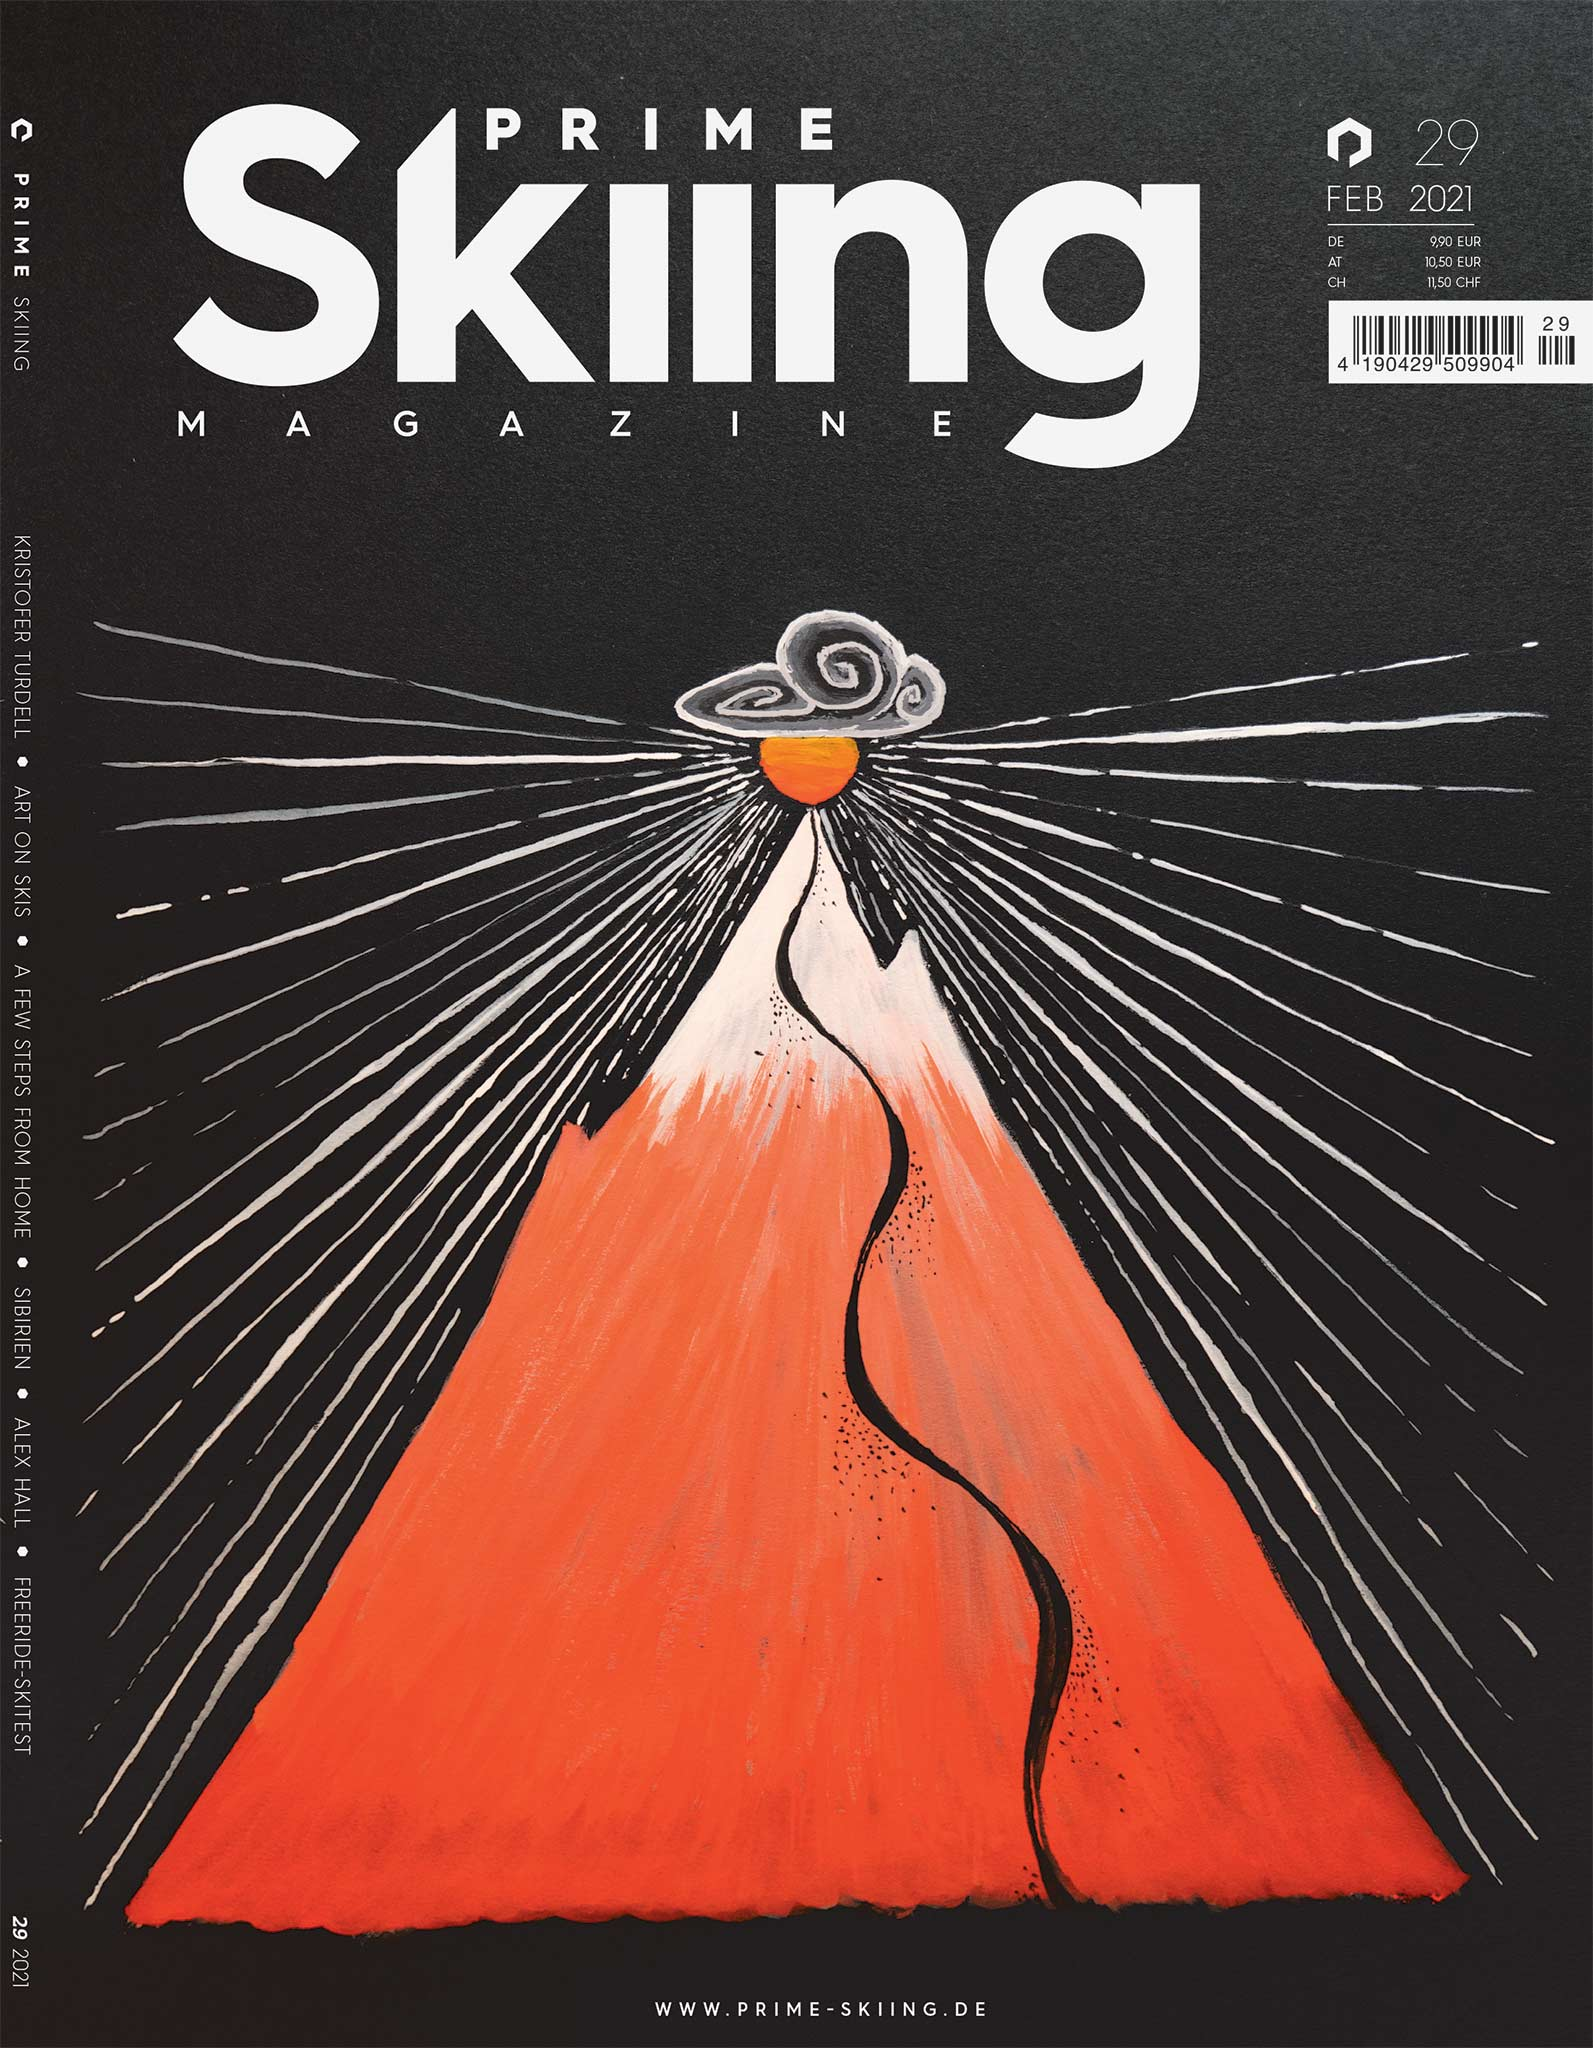 PRIME Skiing #29 – Cover by Eric Pollard